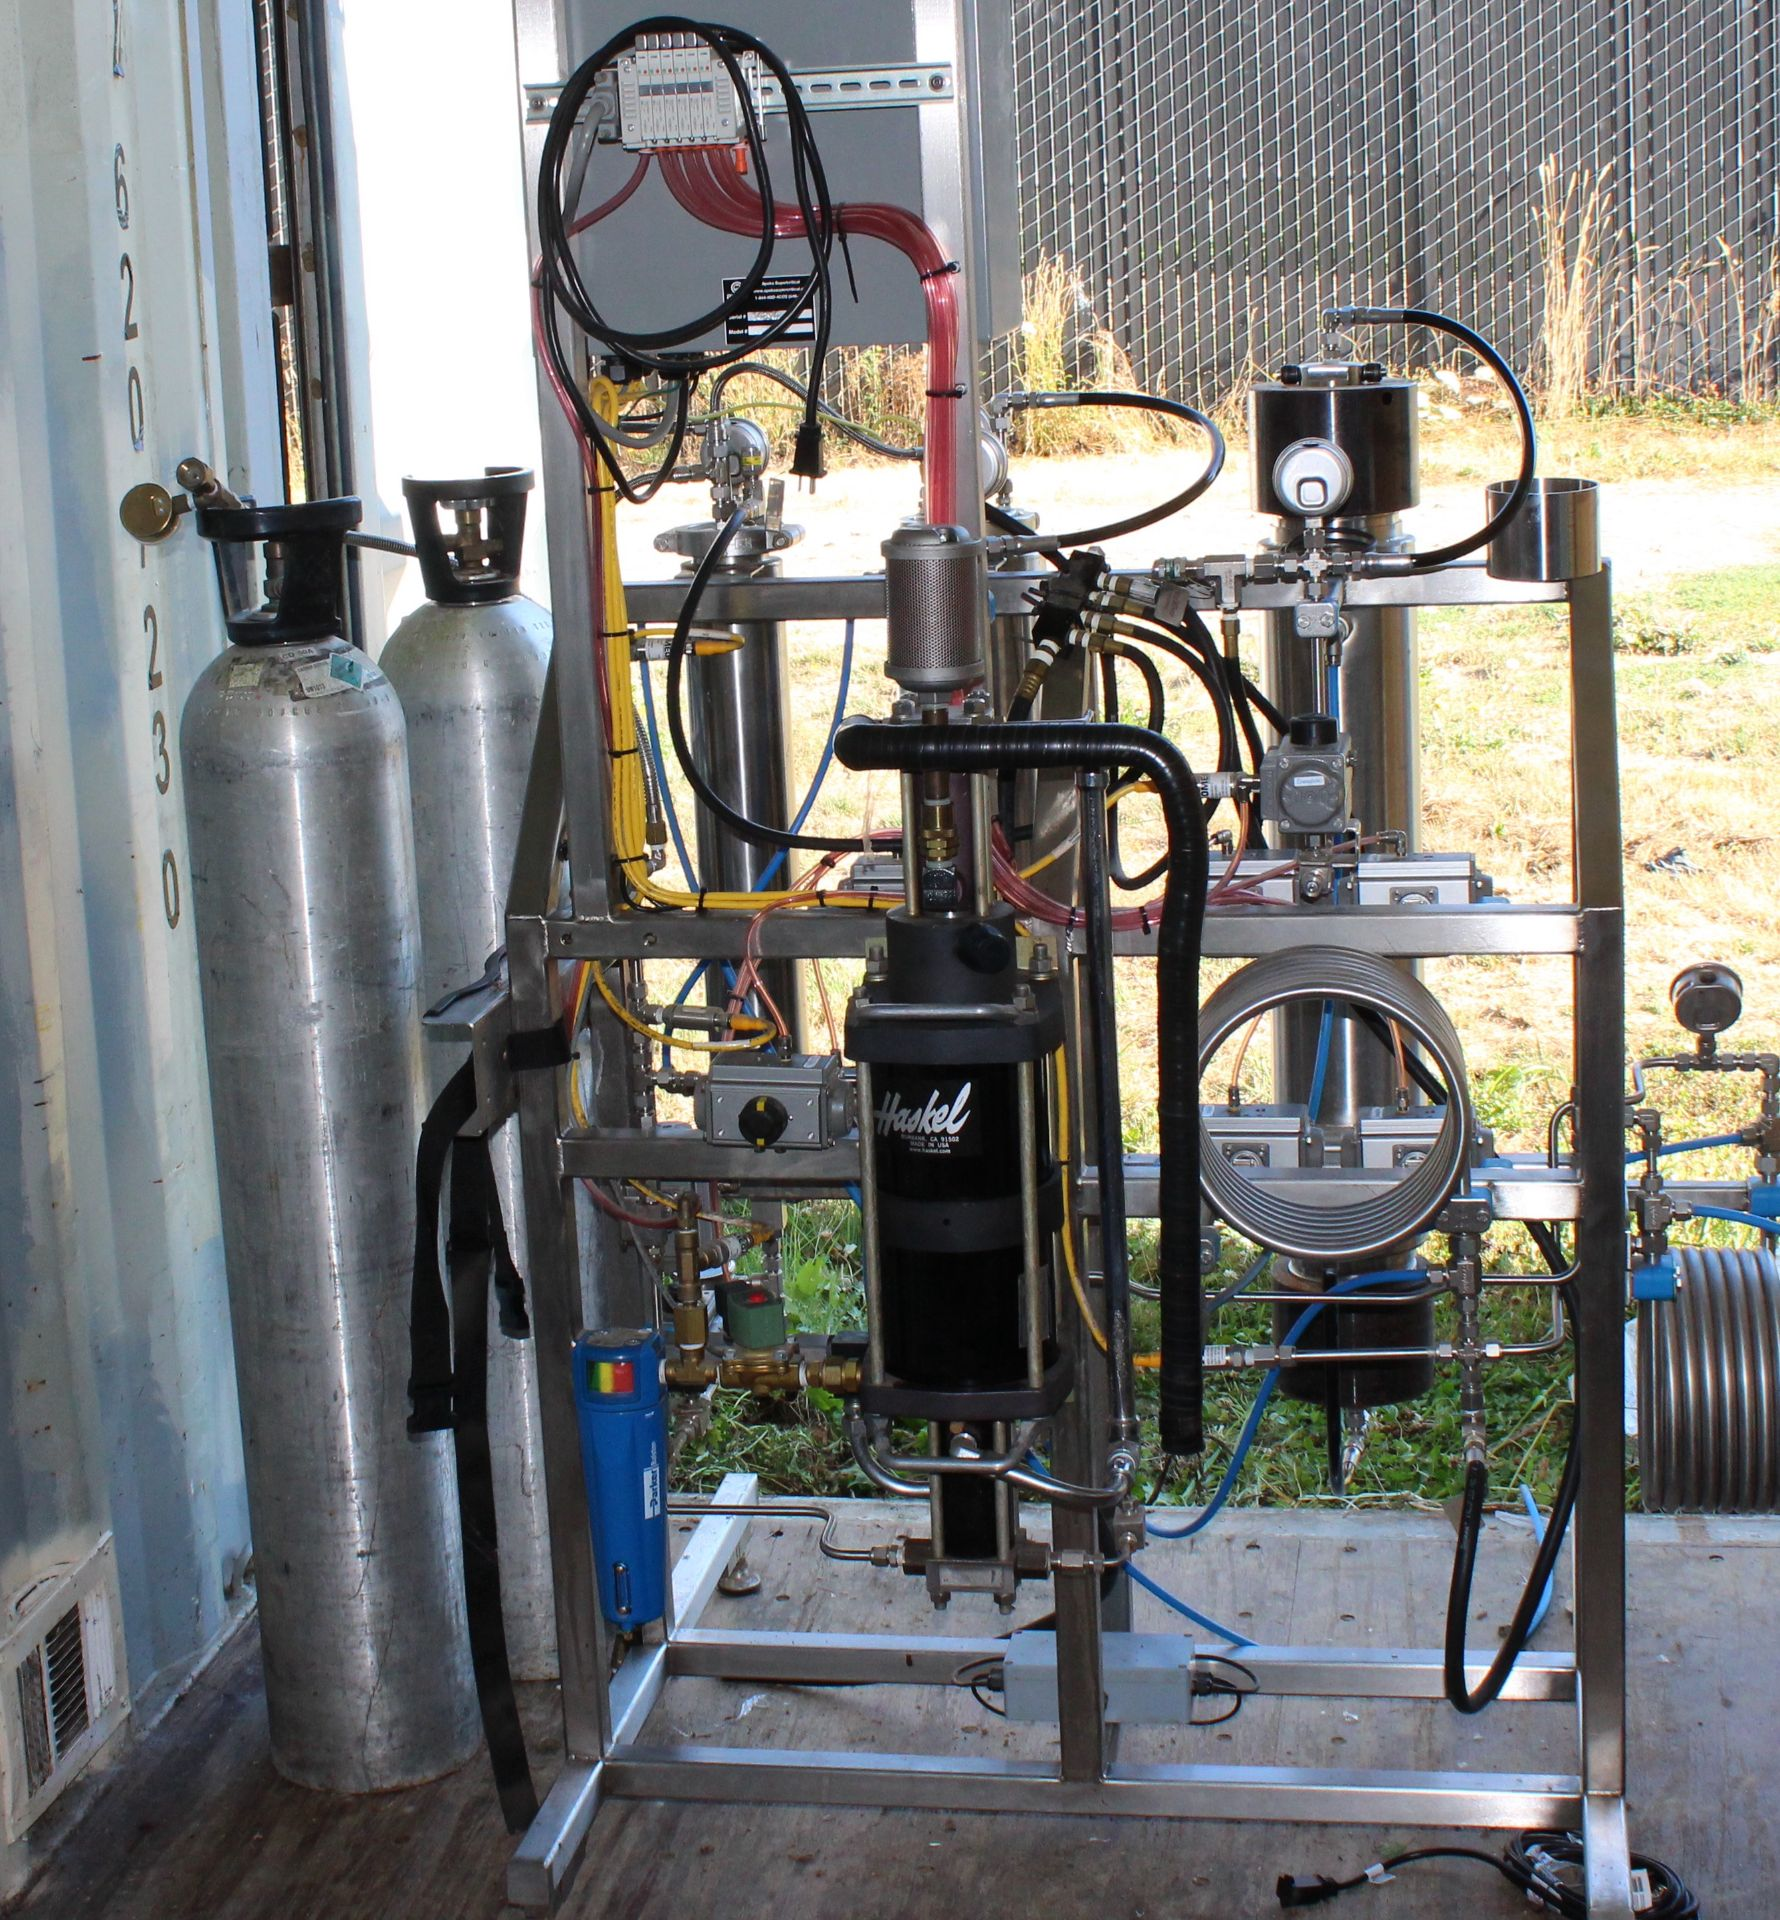 Used-Apeks 2x 5L 5000 PSI 5L Extraction System. Holds up to 3 lbs of dry/ground material - Image 2 of 6